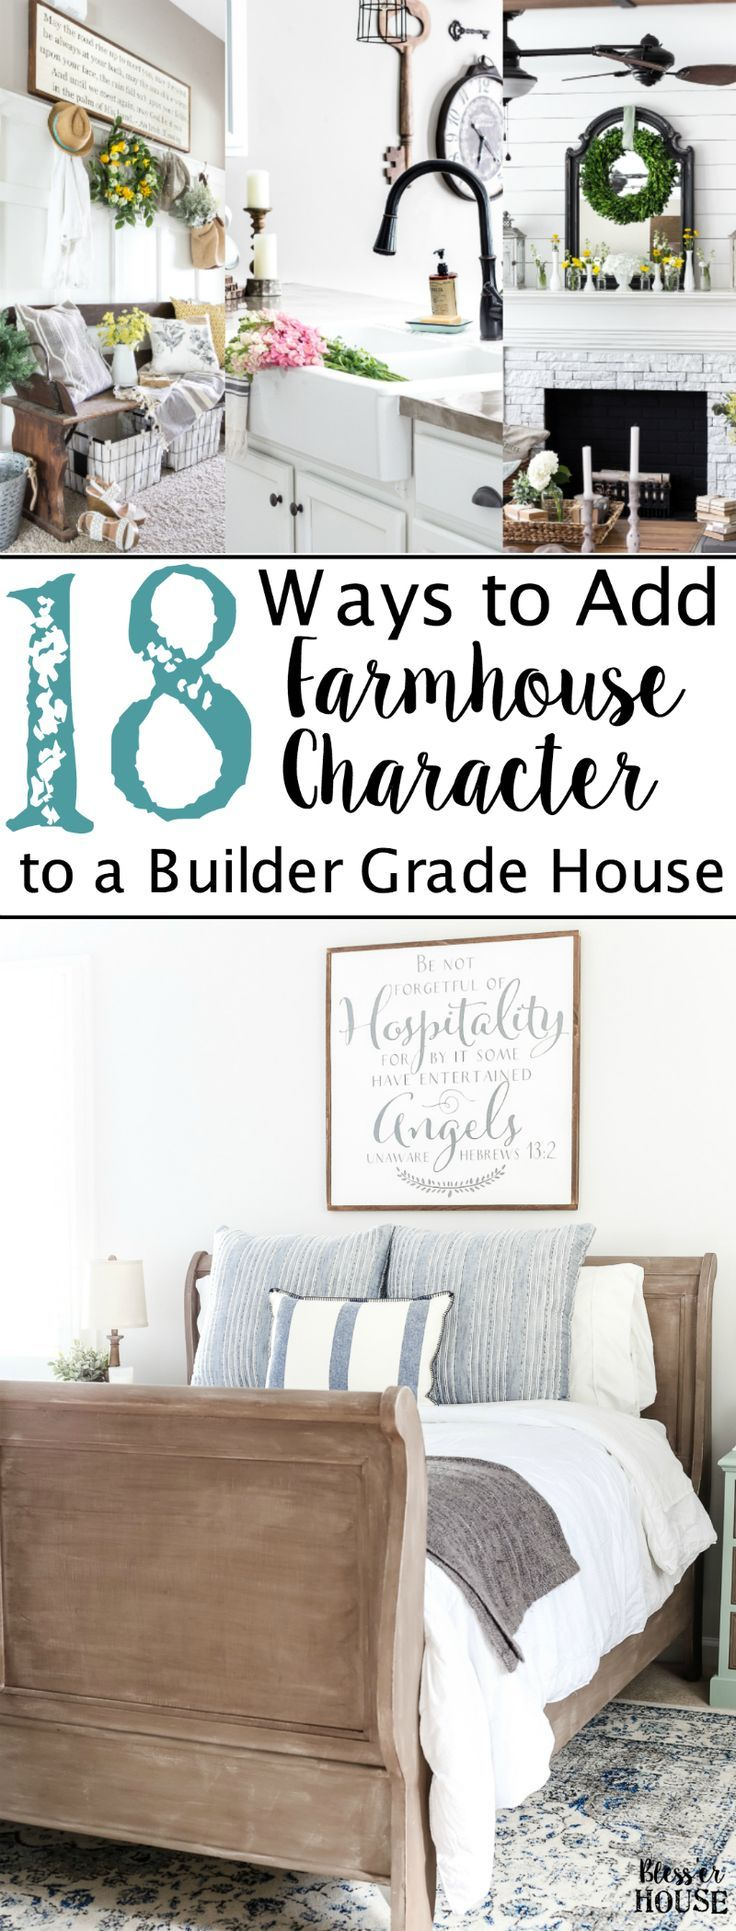 18 Ways to Add Farmhouse Character to a Builder Grade House on a Budget | blesserhouse.com - An in-depth list of do-it-yourself home improvement projects and budget decorating tips to add farmhouse character to a builder grade house (or any home).